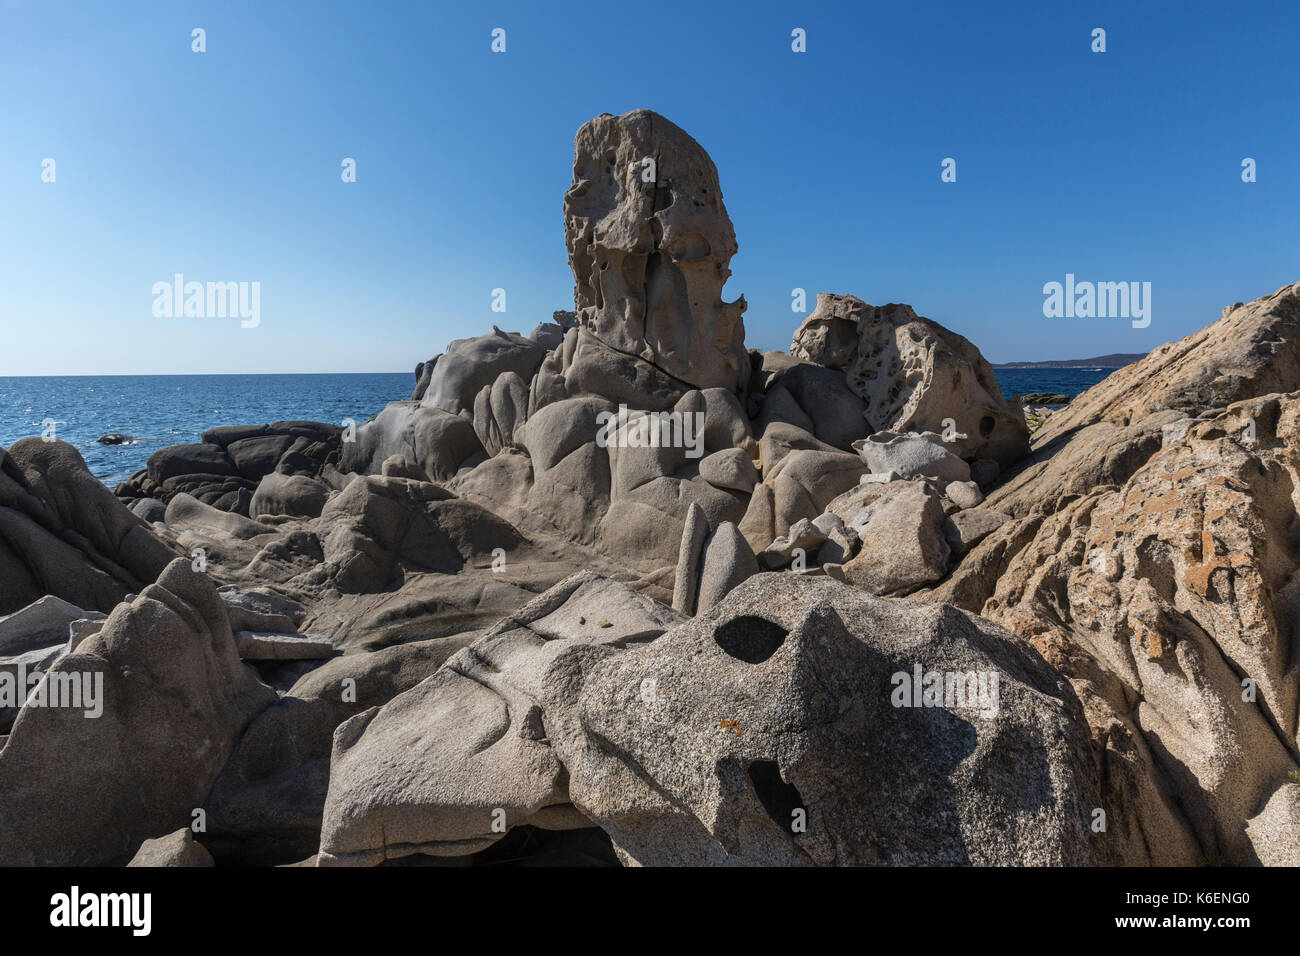 The sun shines on the rocks eroded by wind framing the blue sea Punta Molentis Villasimius Cagliari Sardinia Italy Europe - Stock Image